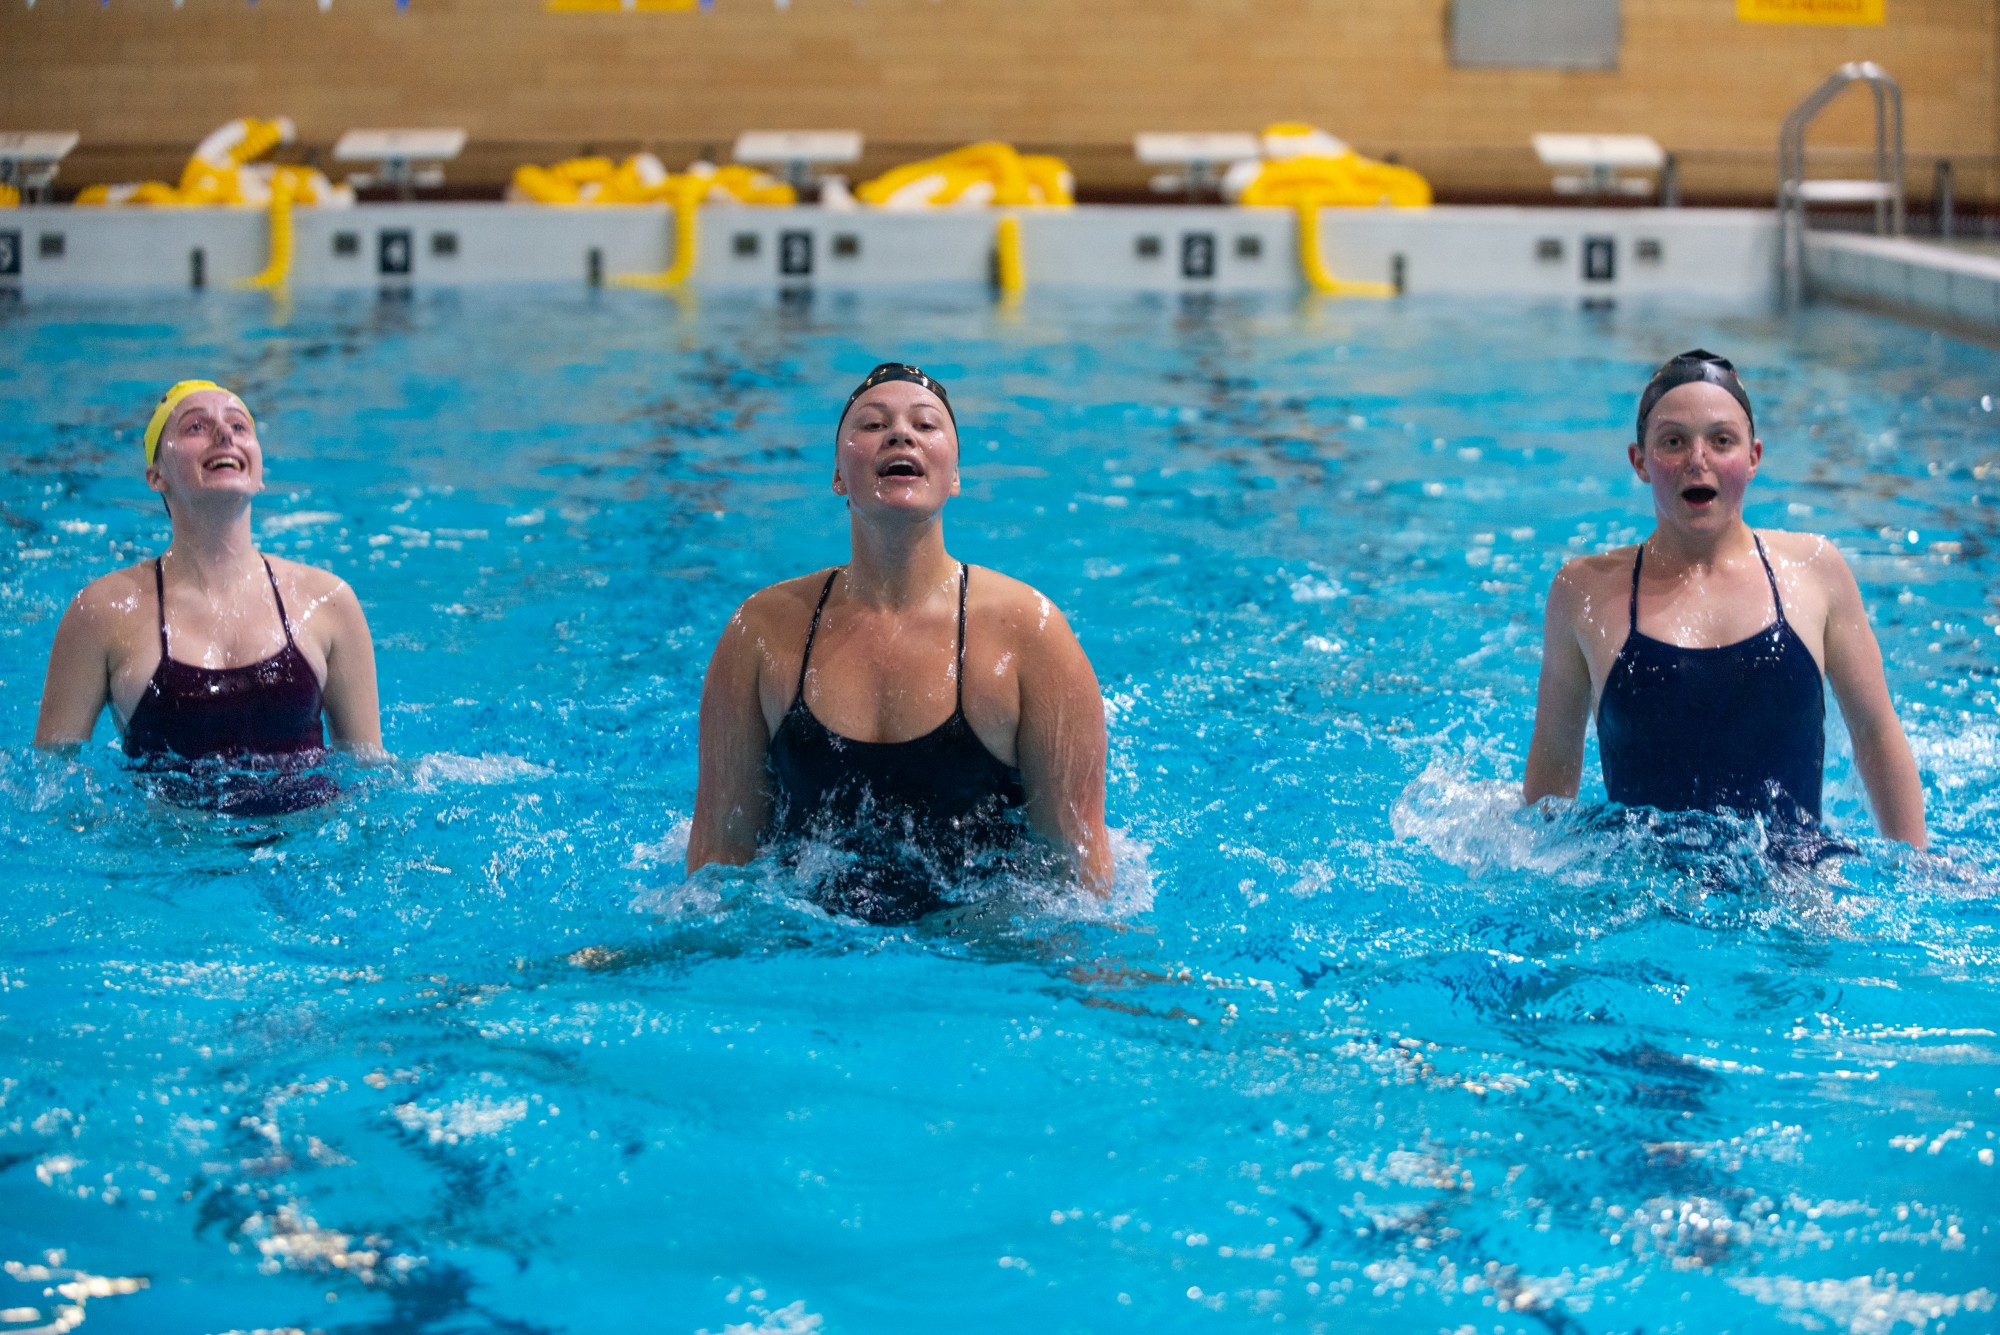 Members of the University's Synchronized Swimming Club participate in a practice session in Cooke Hall on Wednesday, March 4.